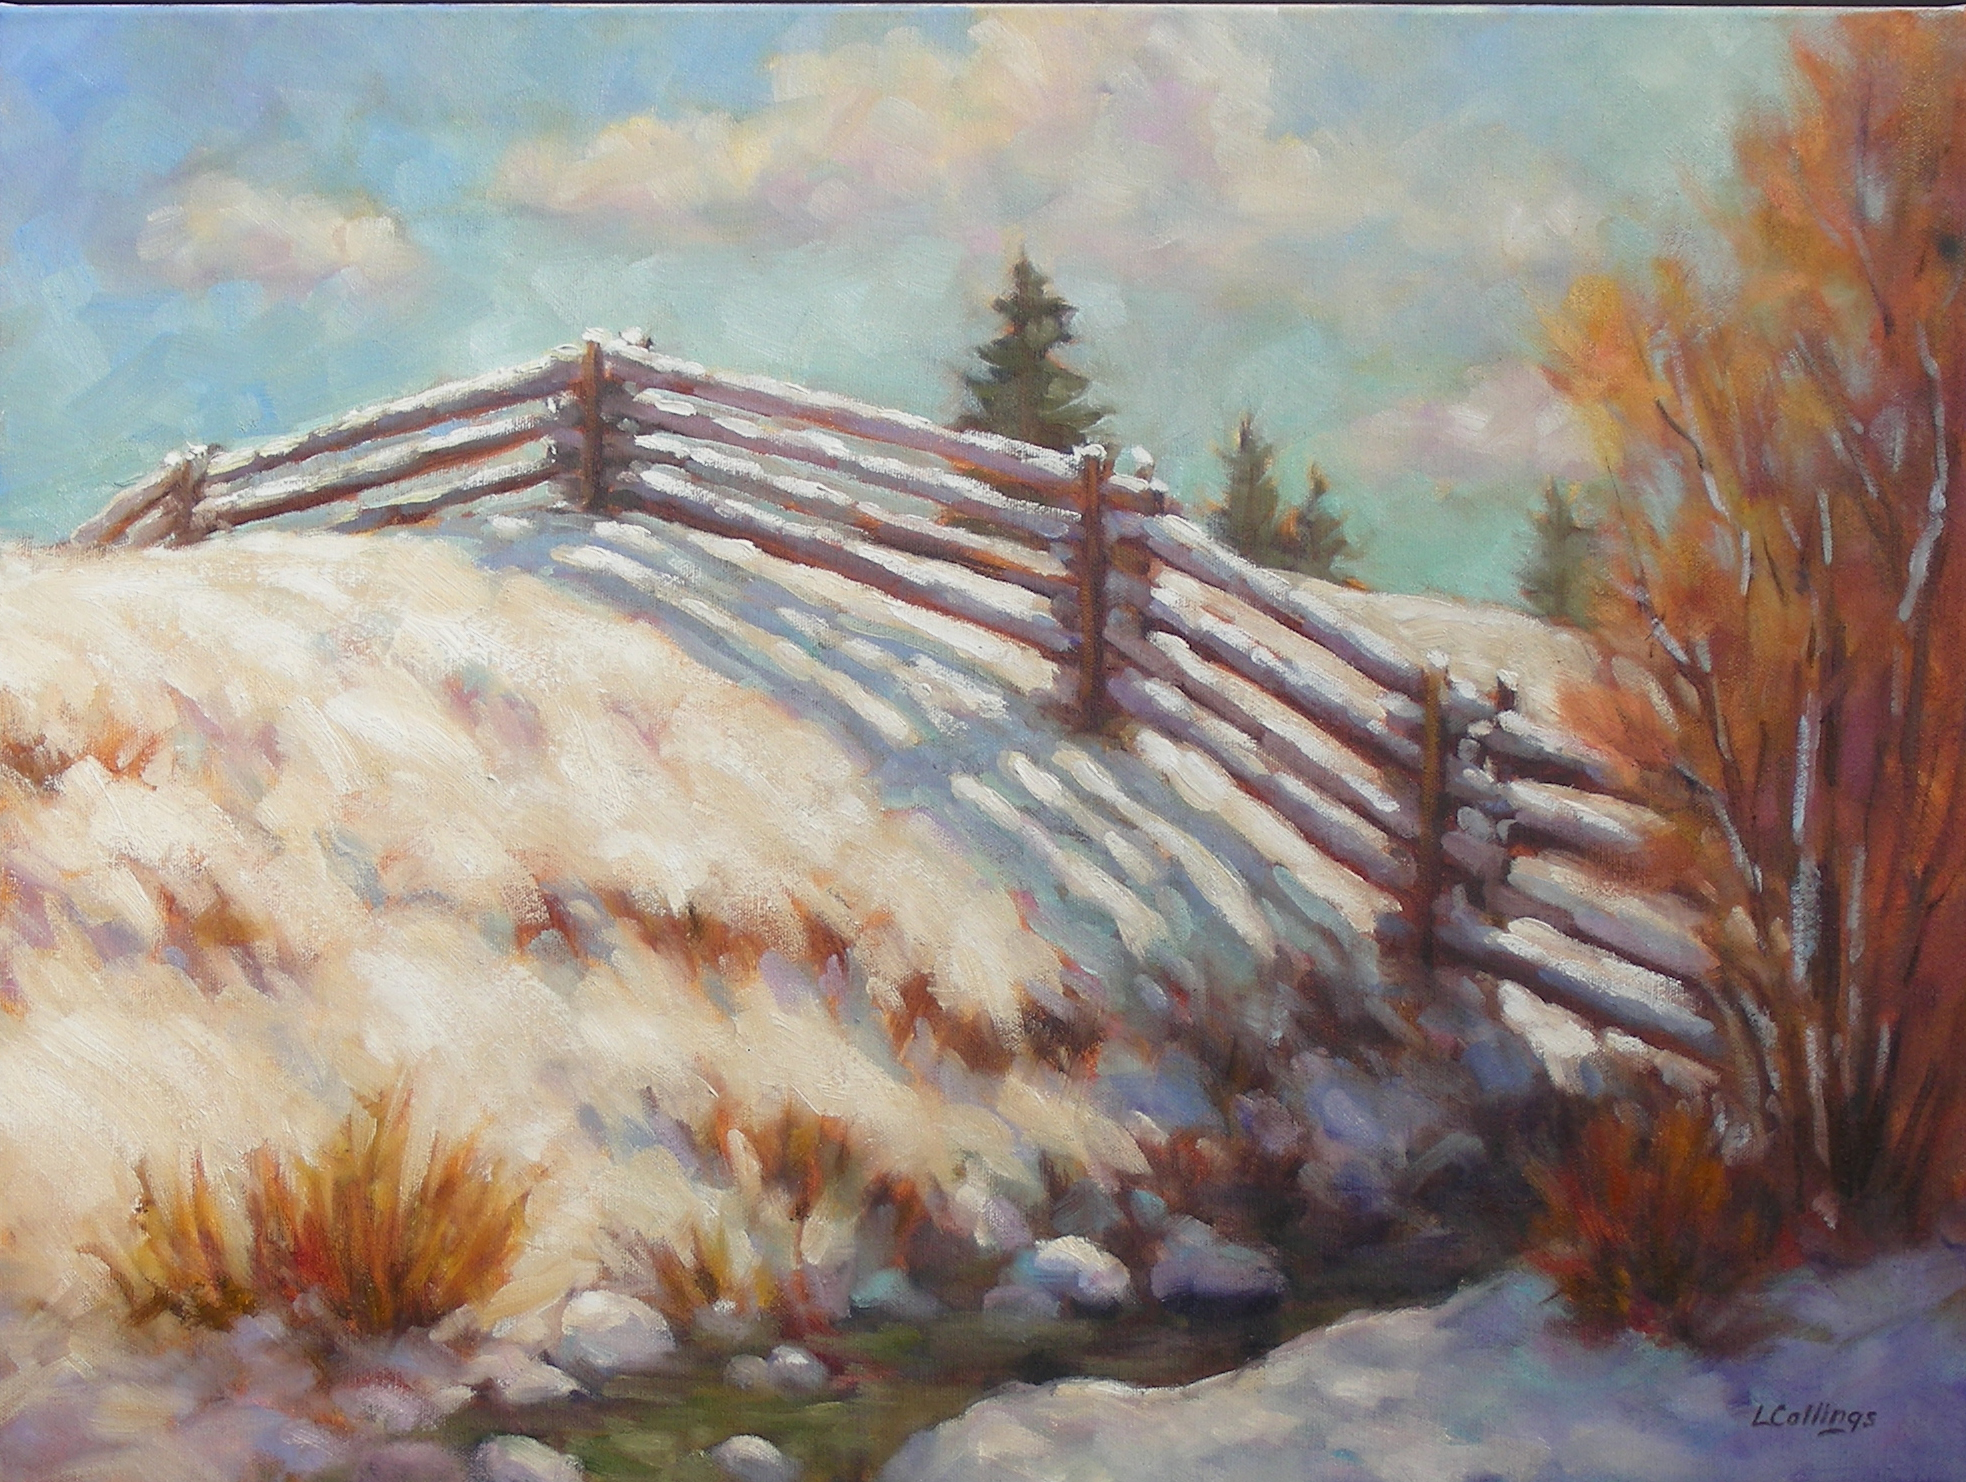 "11 - Creek Bank - 18 x 24"", oil on canvas, $650-"